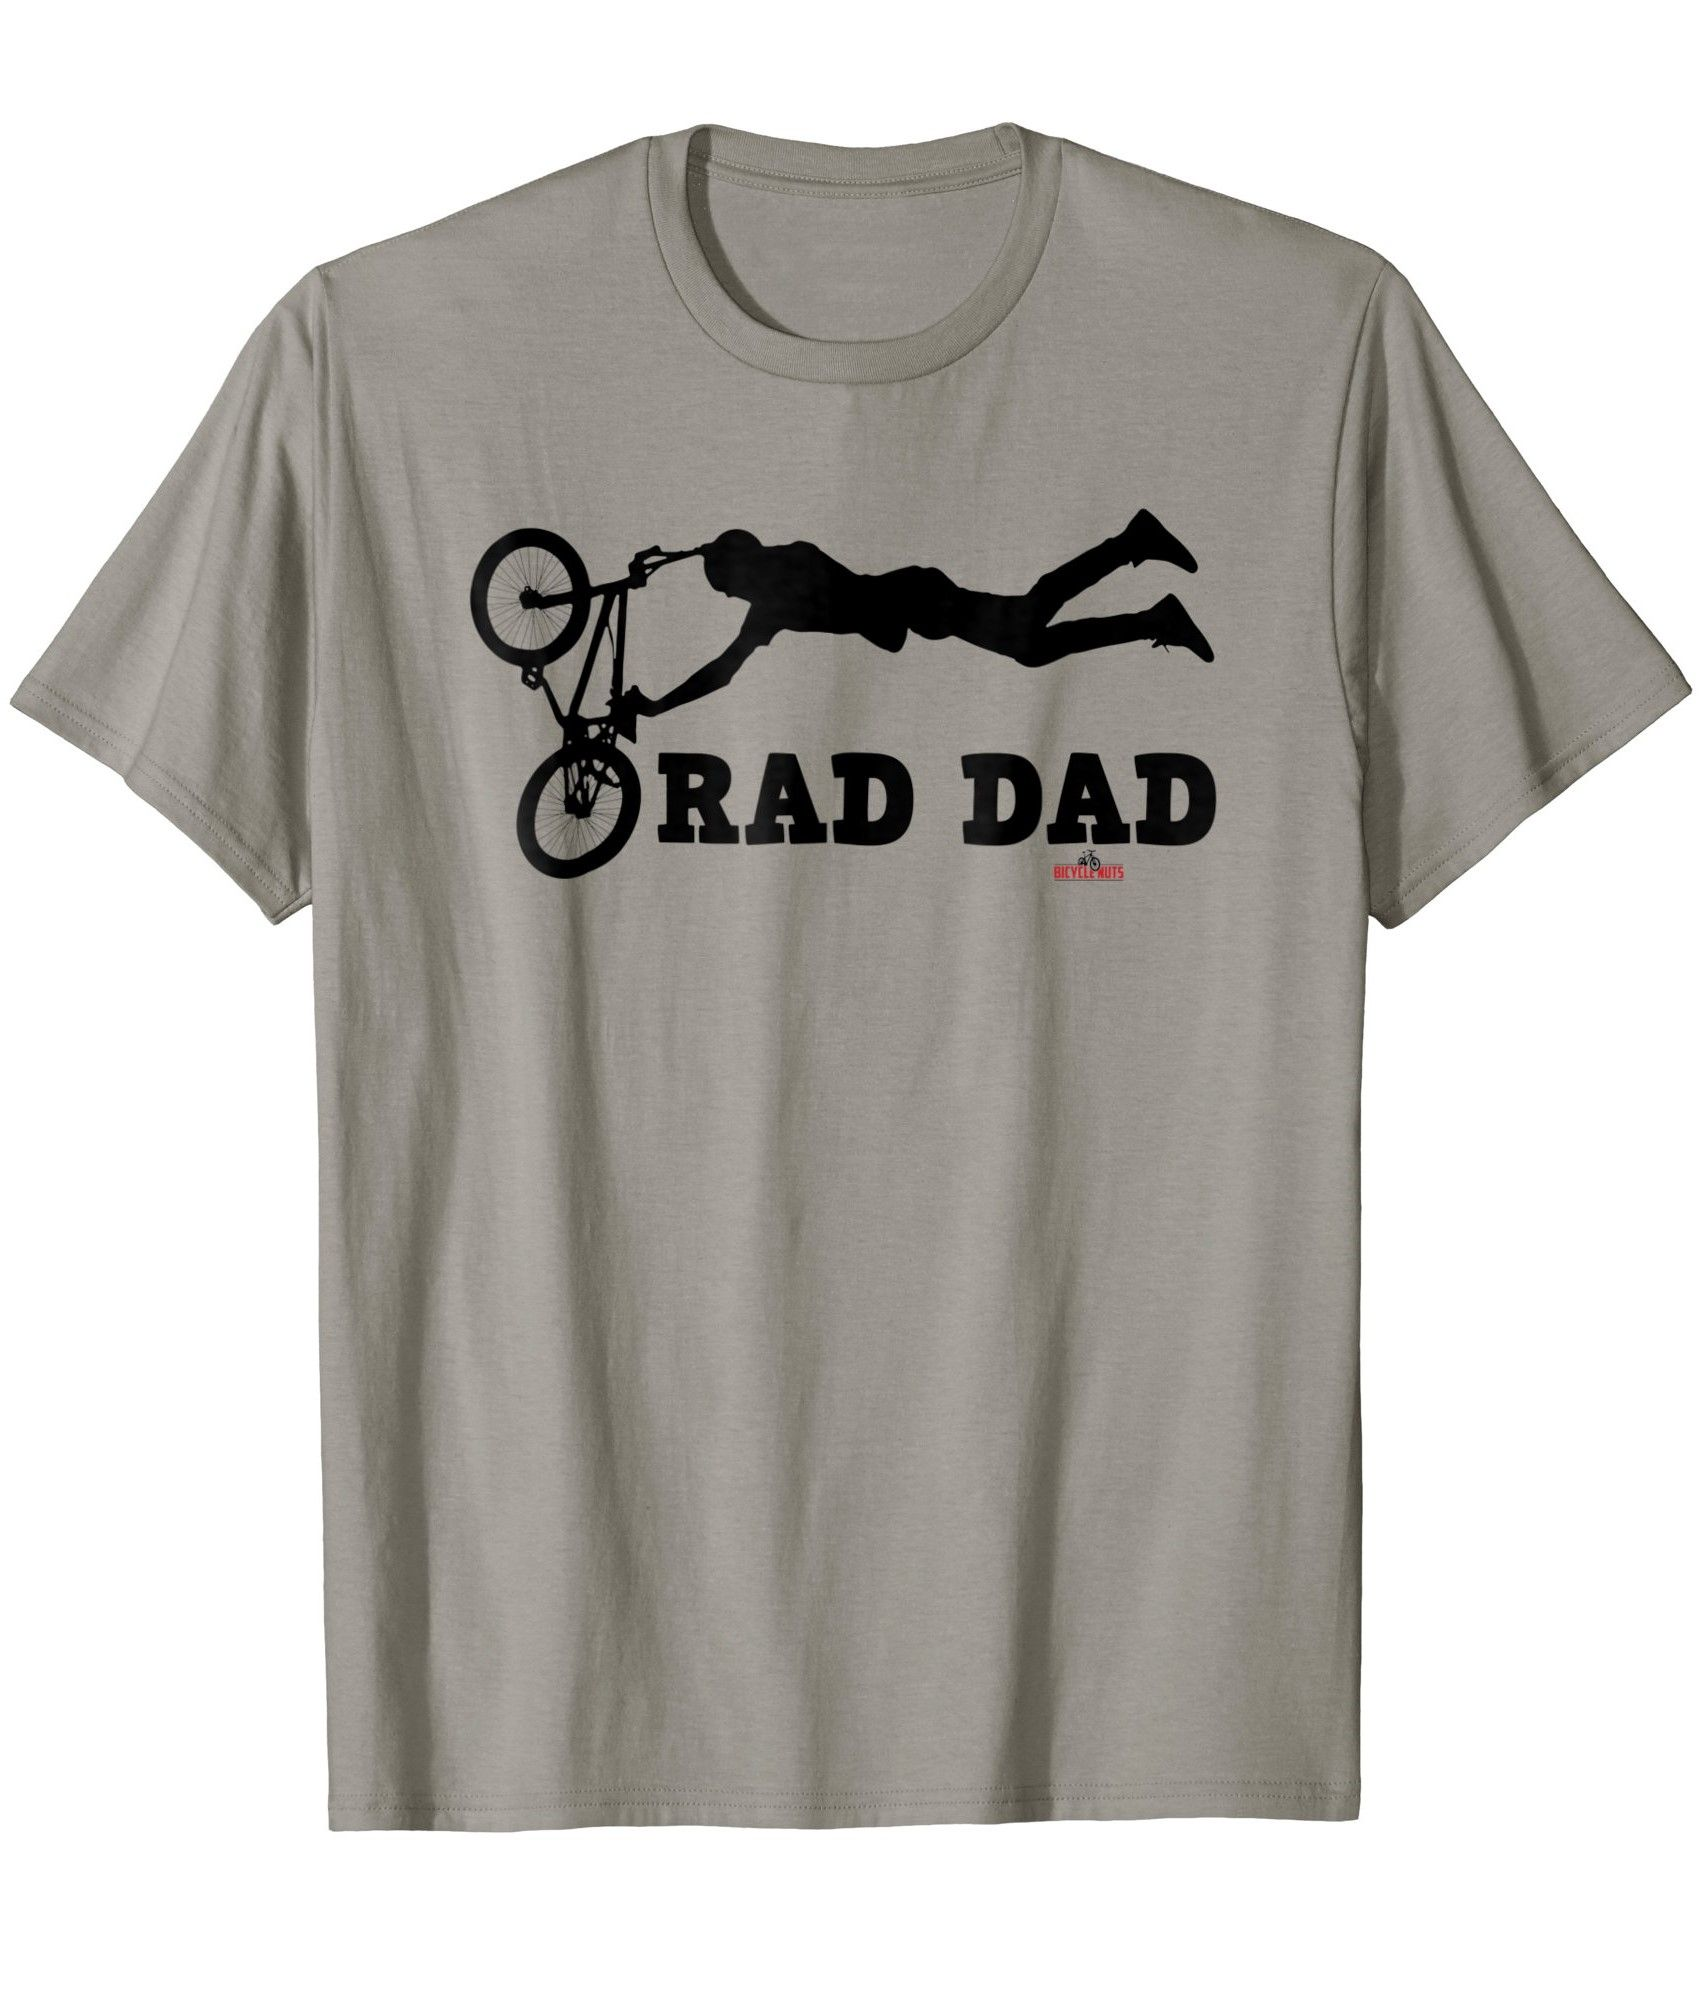 7fe015d75 Fathers Day Rad Dad BMX Bike T-shirt / Casual Bicycle Clothing / T Shirt  Graphic - BMX Trick / Theme - Cool Father Cycling / Ideal Gift Tee for  Cyclists